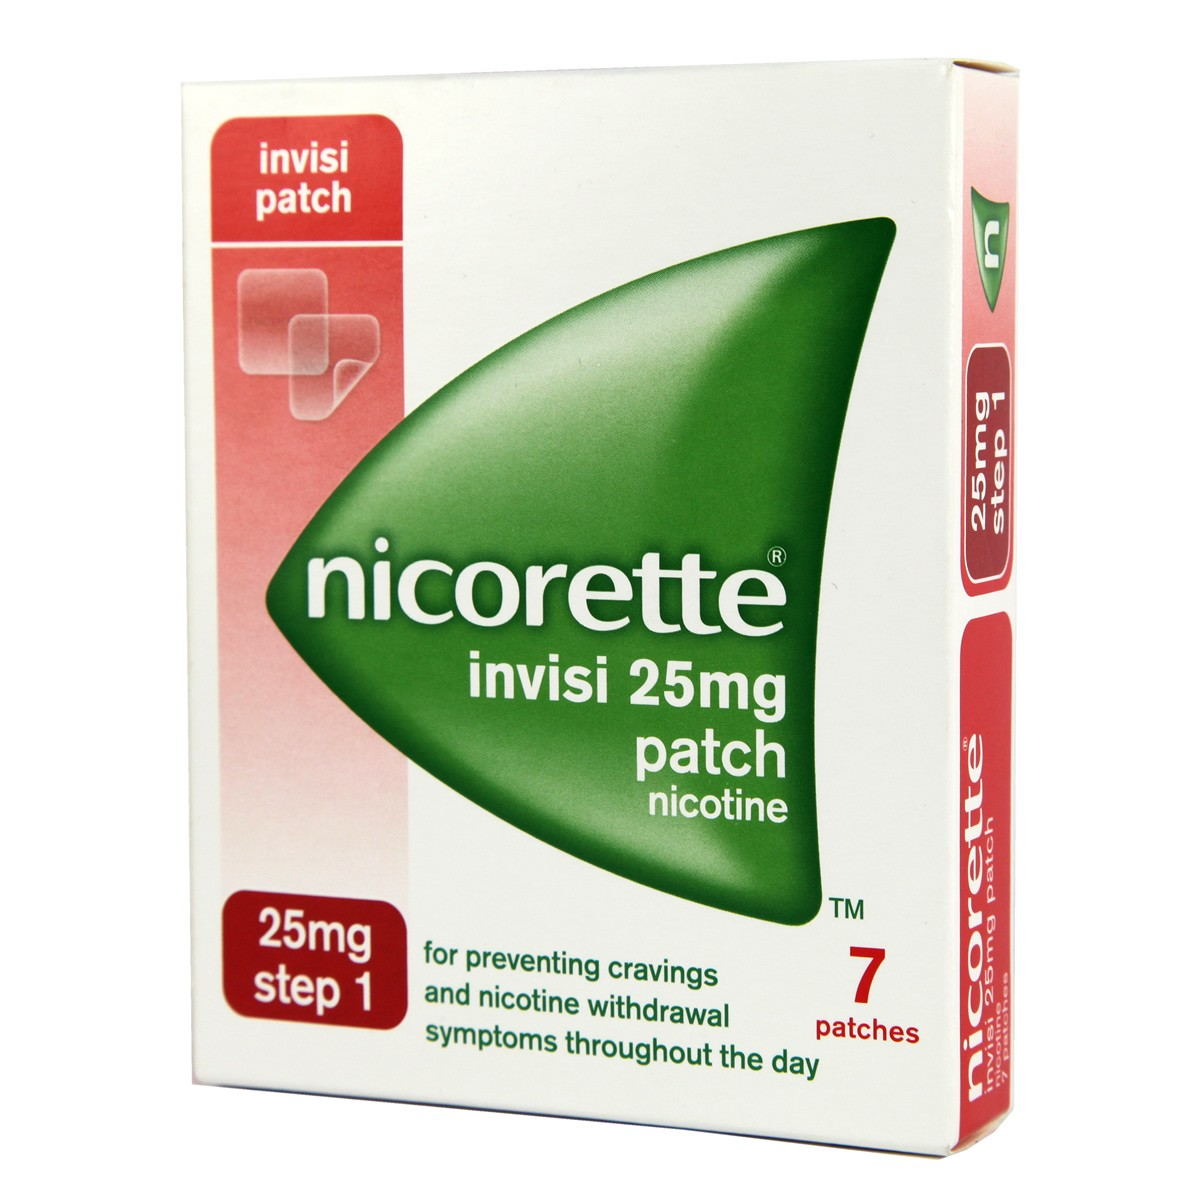 Nicorette Invisi Patch Step 1 - 25mg